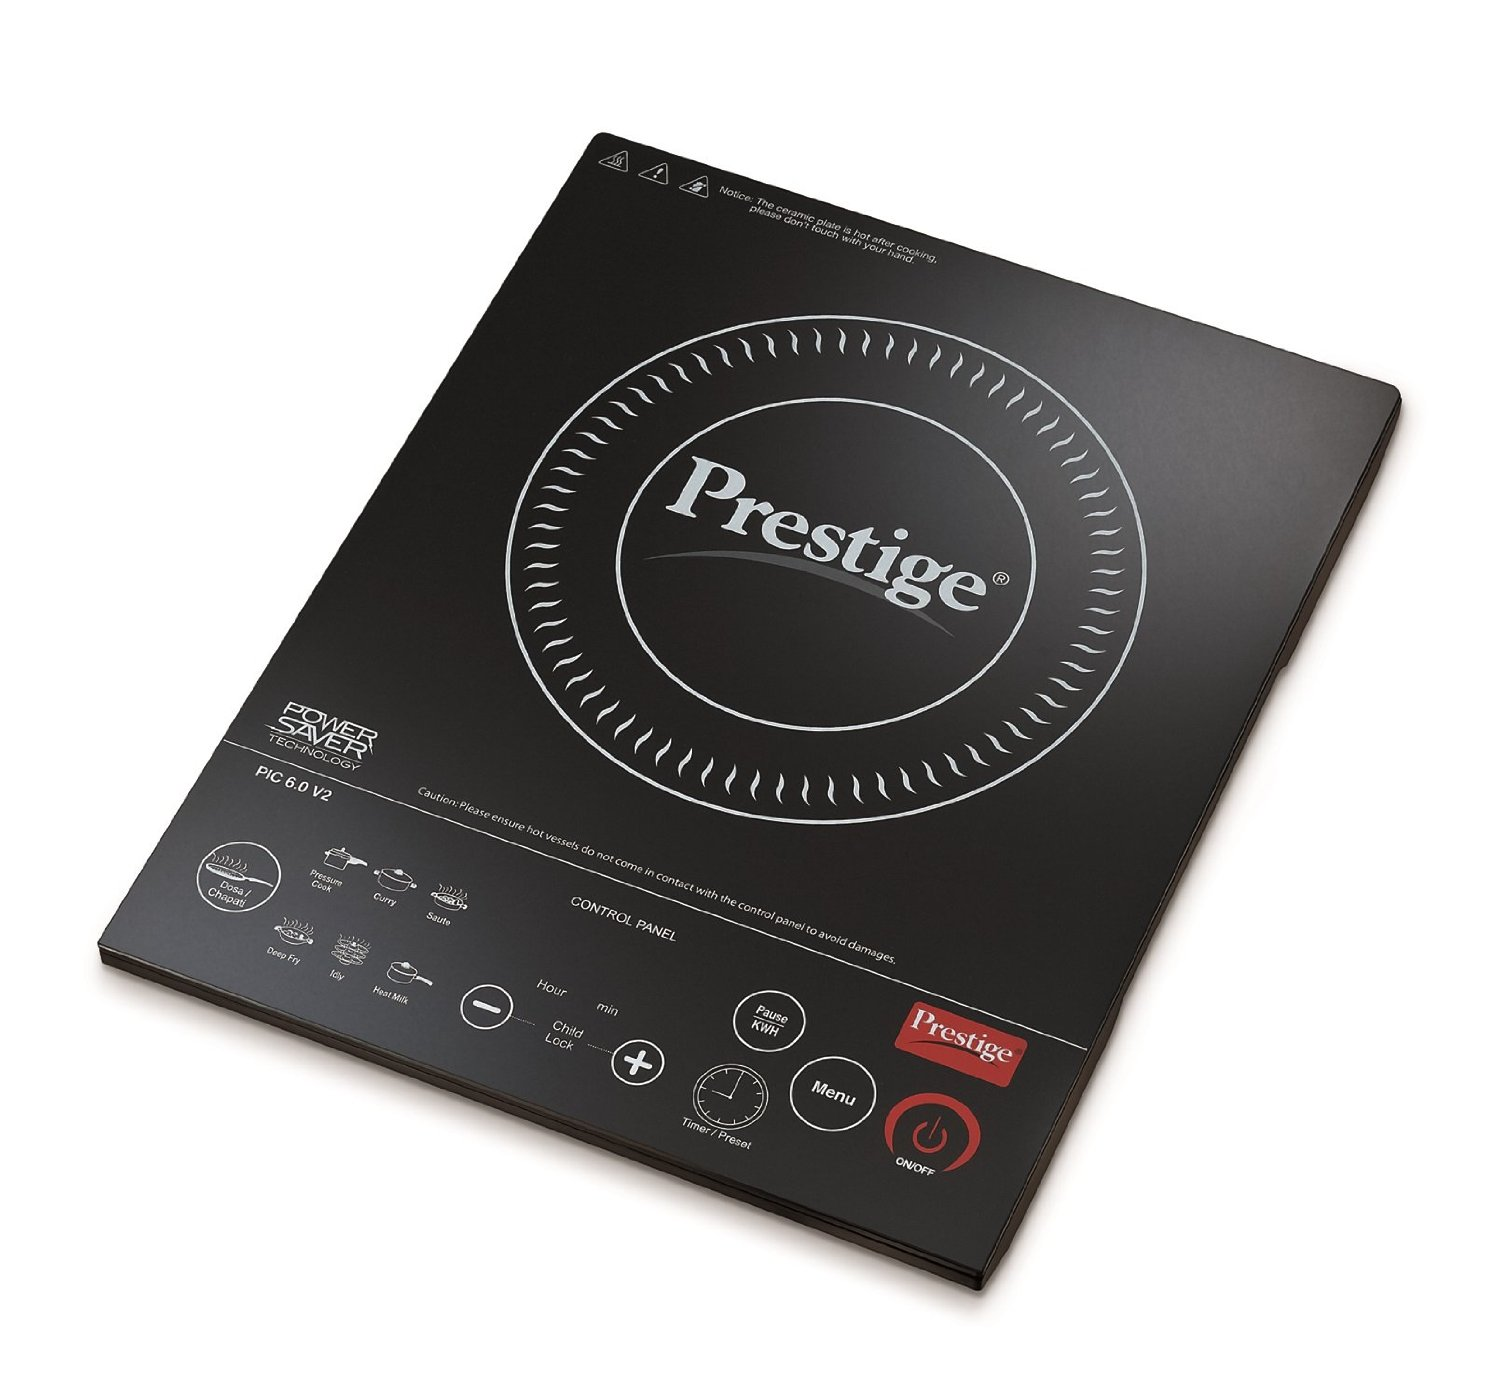 Kuche Single Stove Induction Cooktop Prestige Pic 6 V2 2000 Watt Induction Cooktop